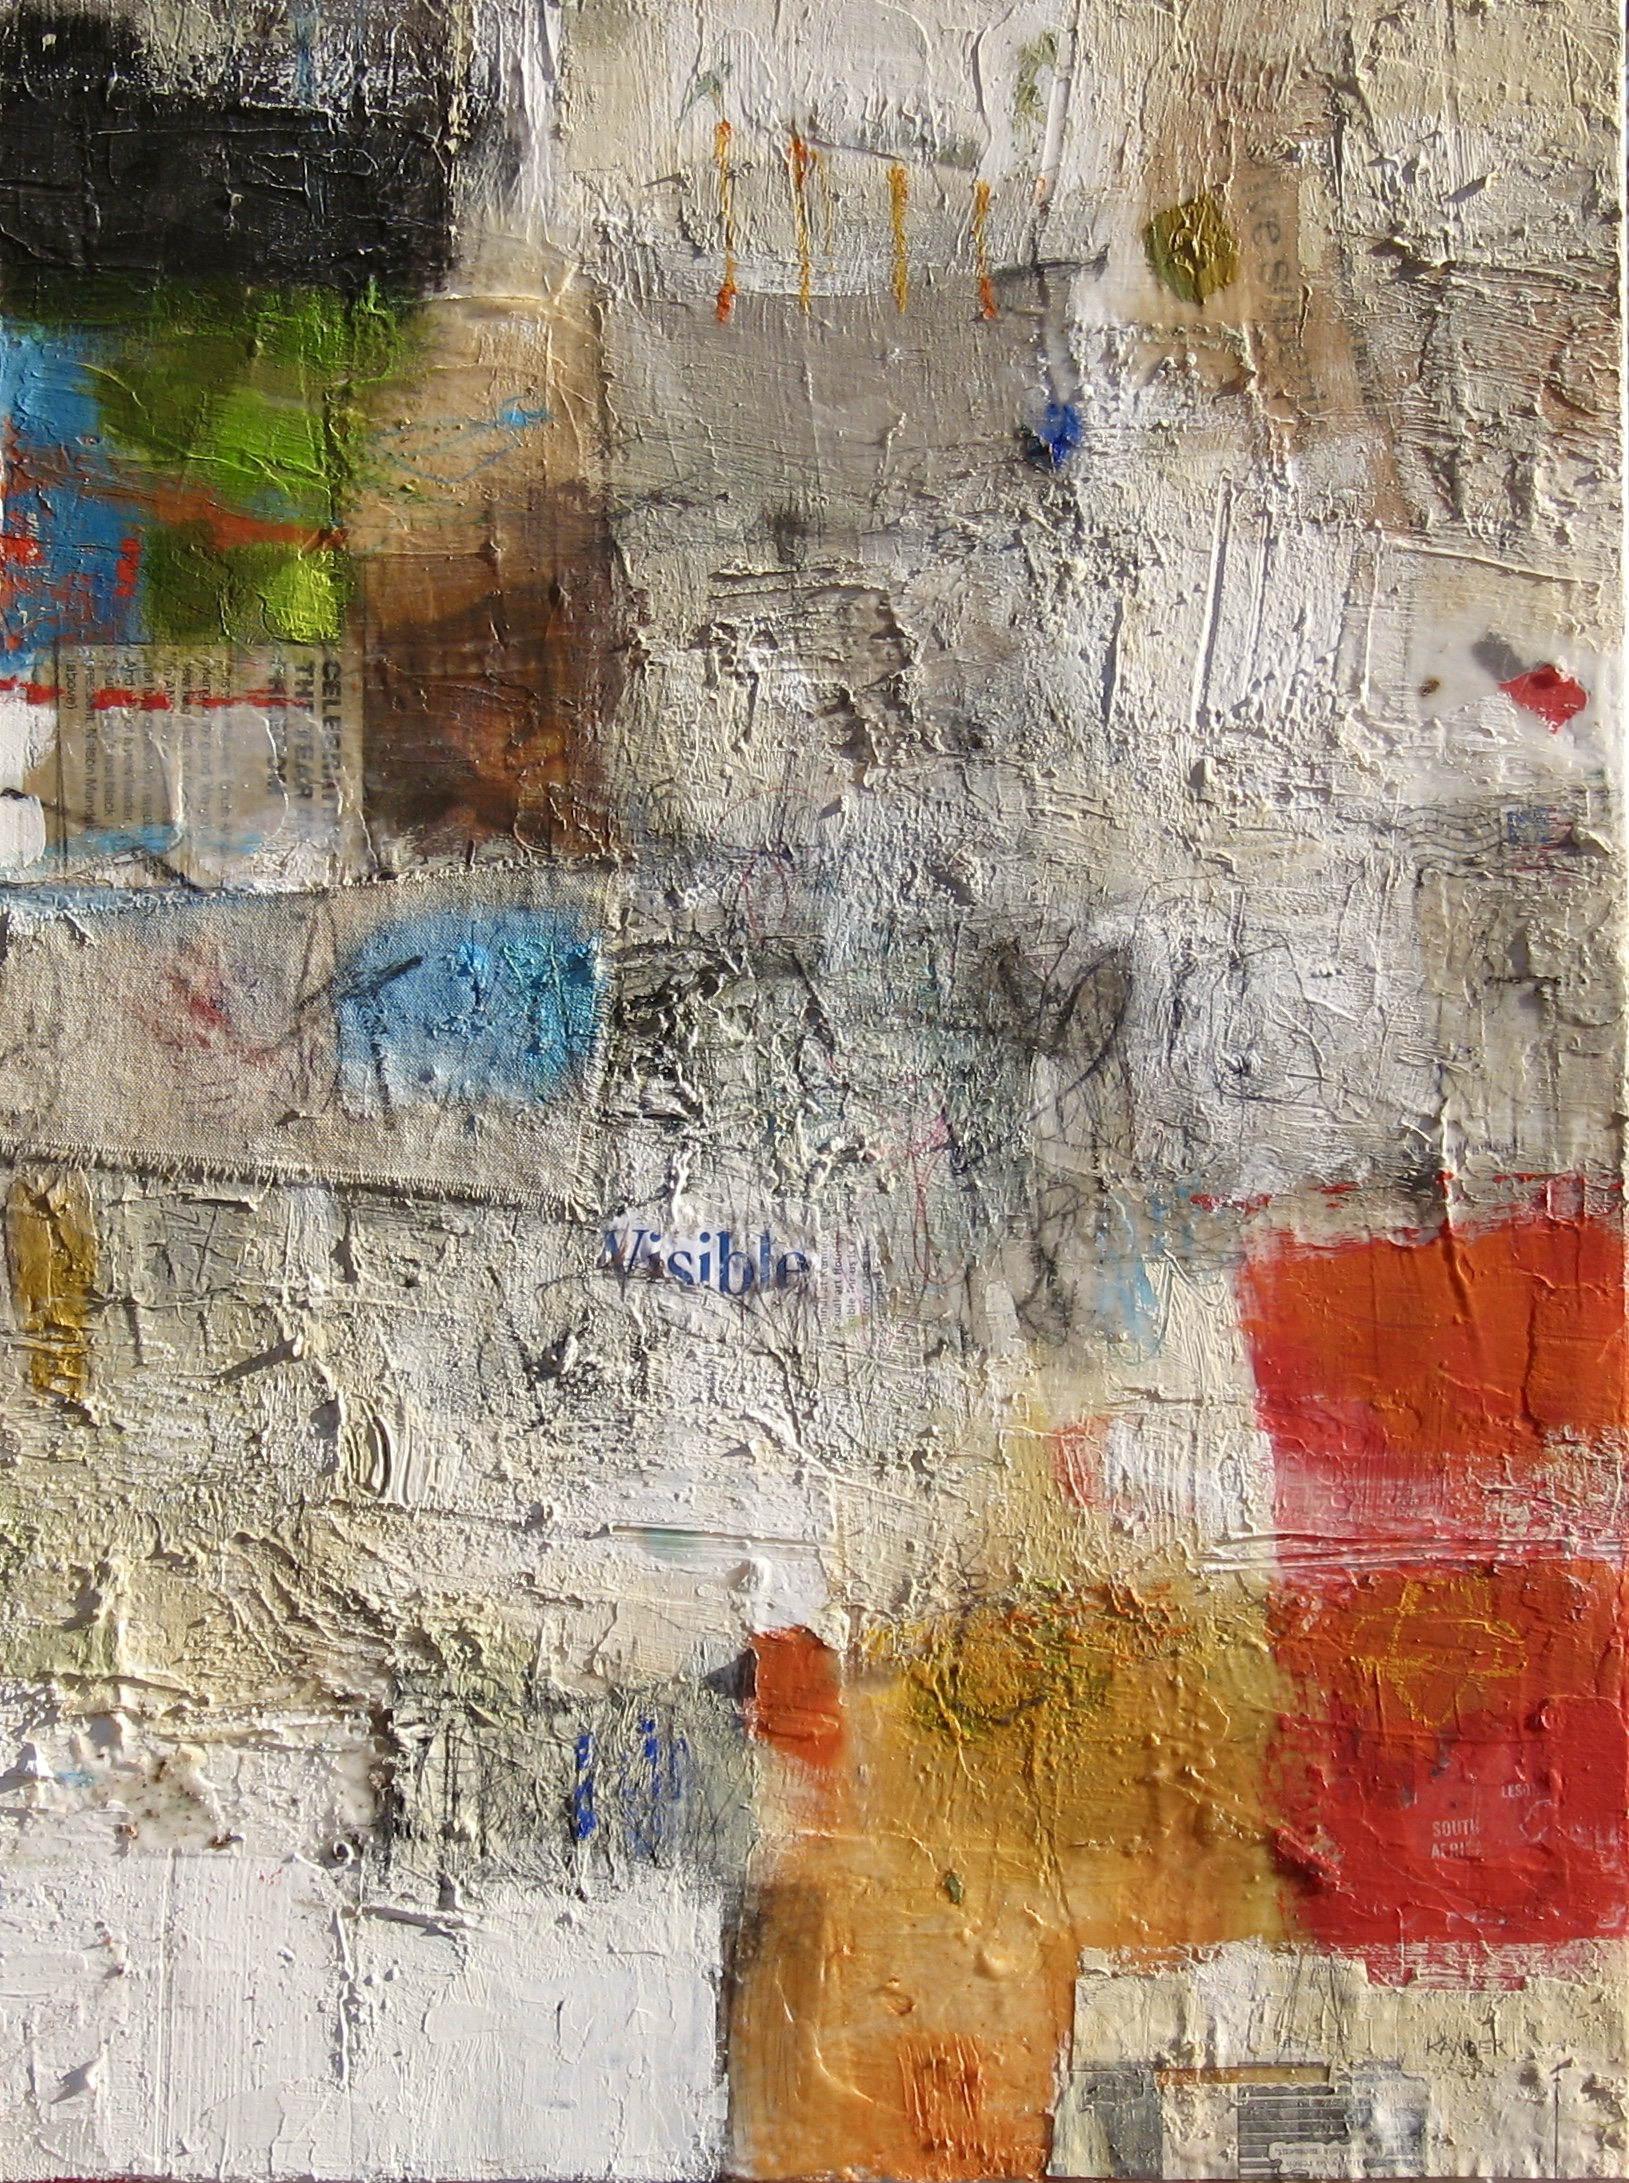 mixed media on canvas by tamar kander, re-view